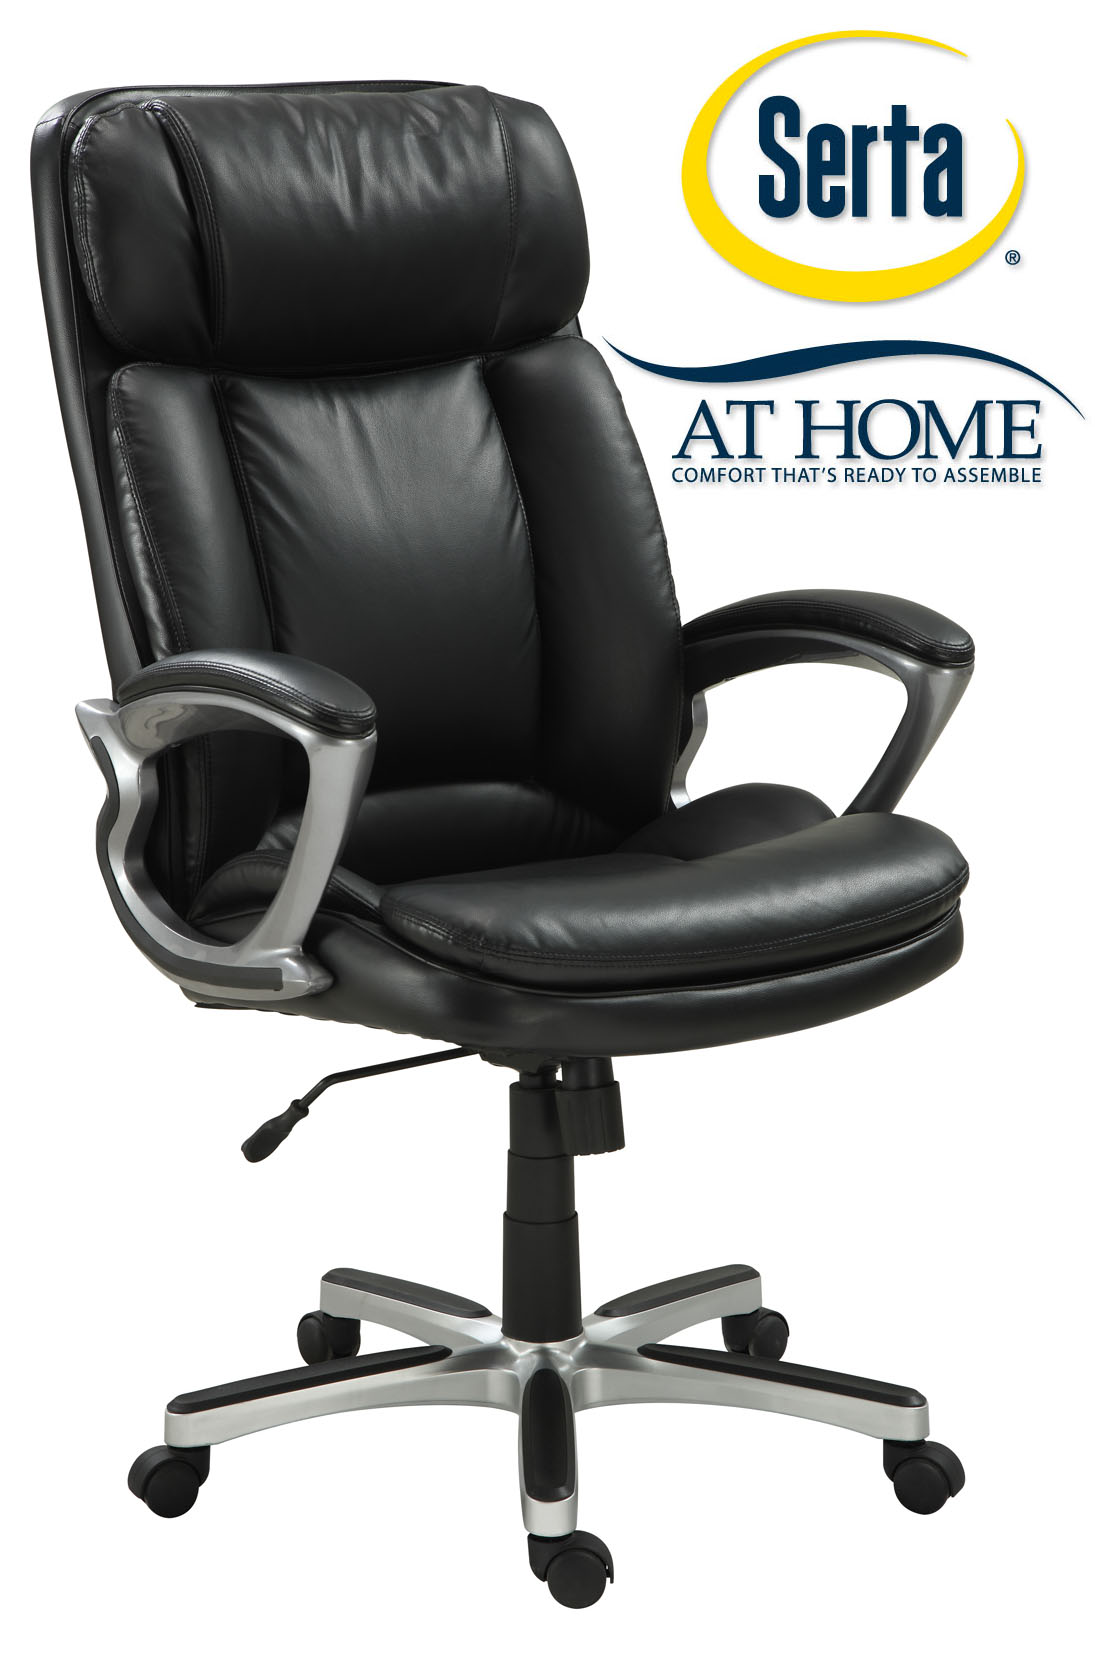 executive office chairs specifications french country dining chair cushions serta big and tall shop your way